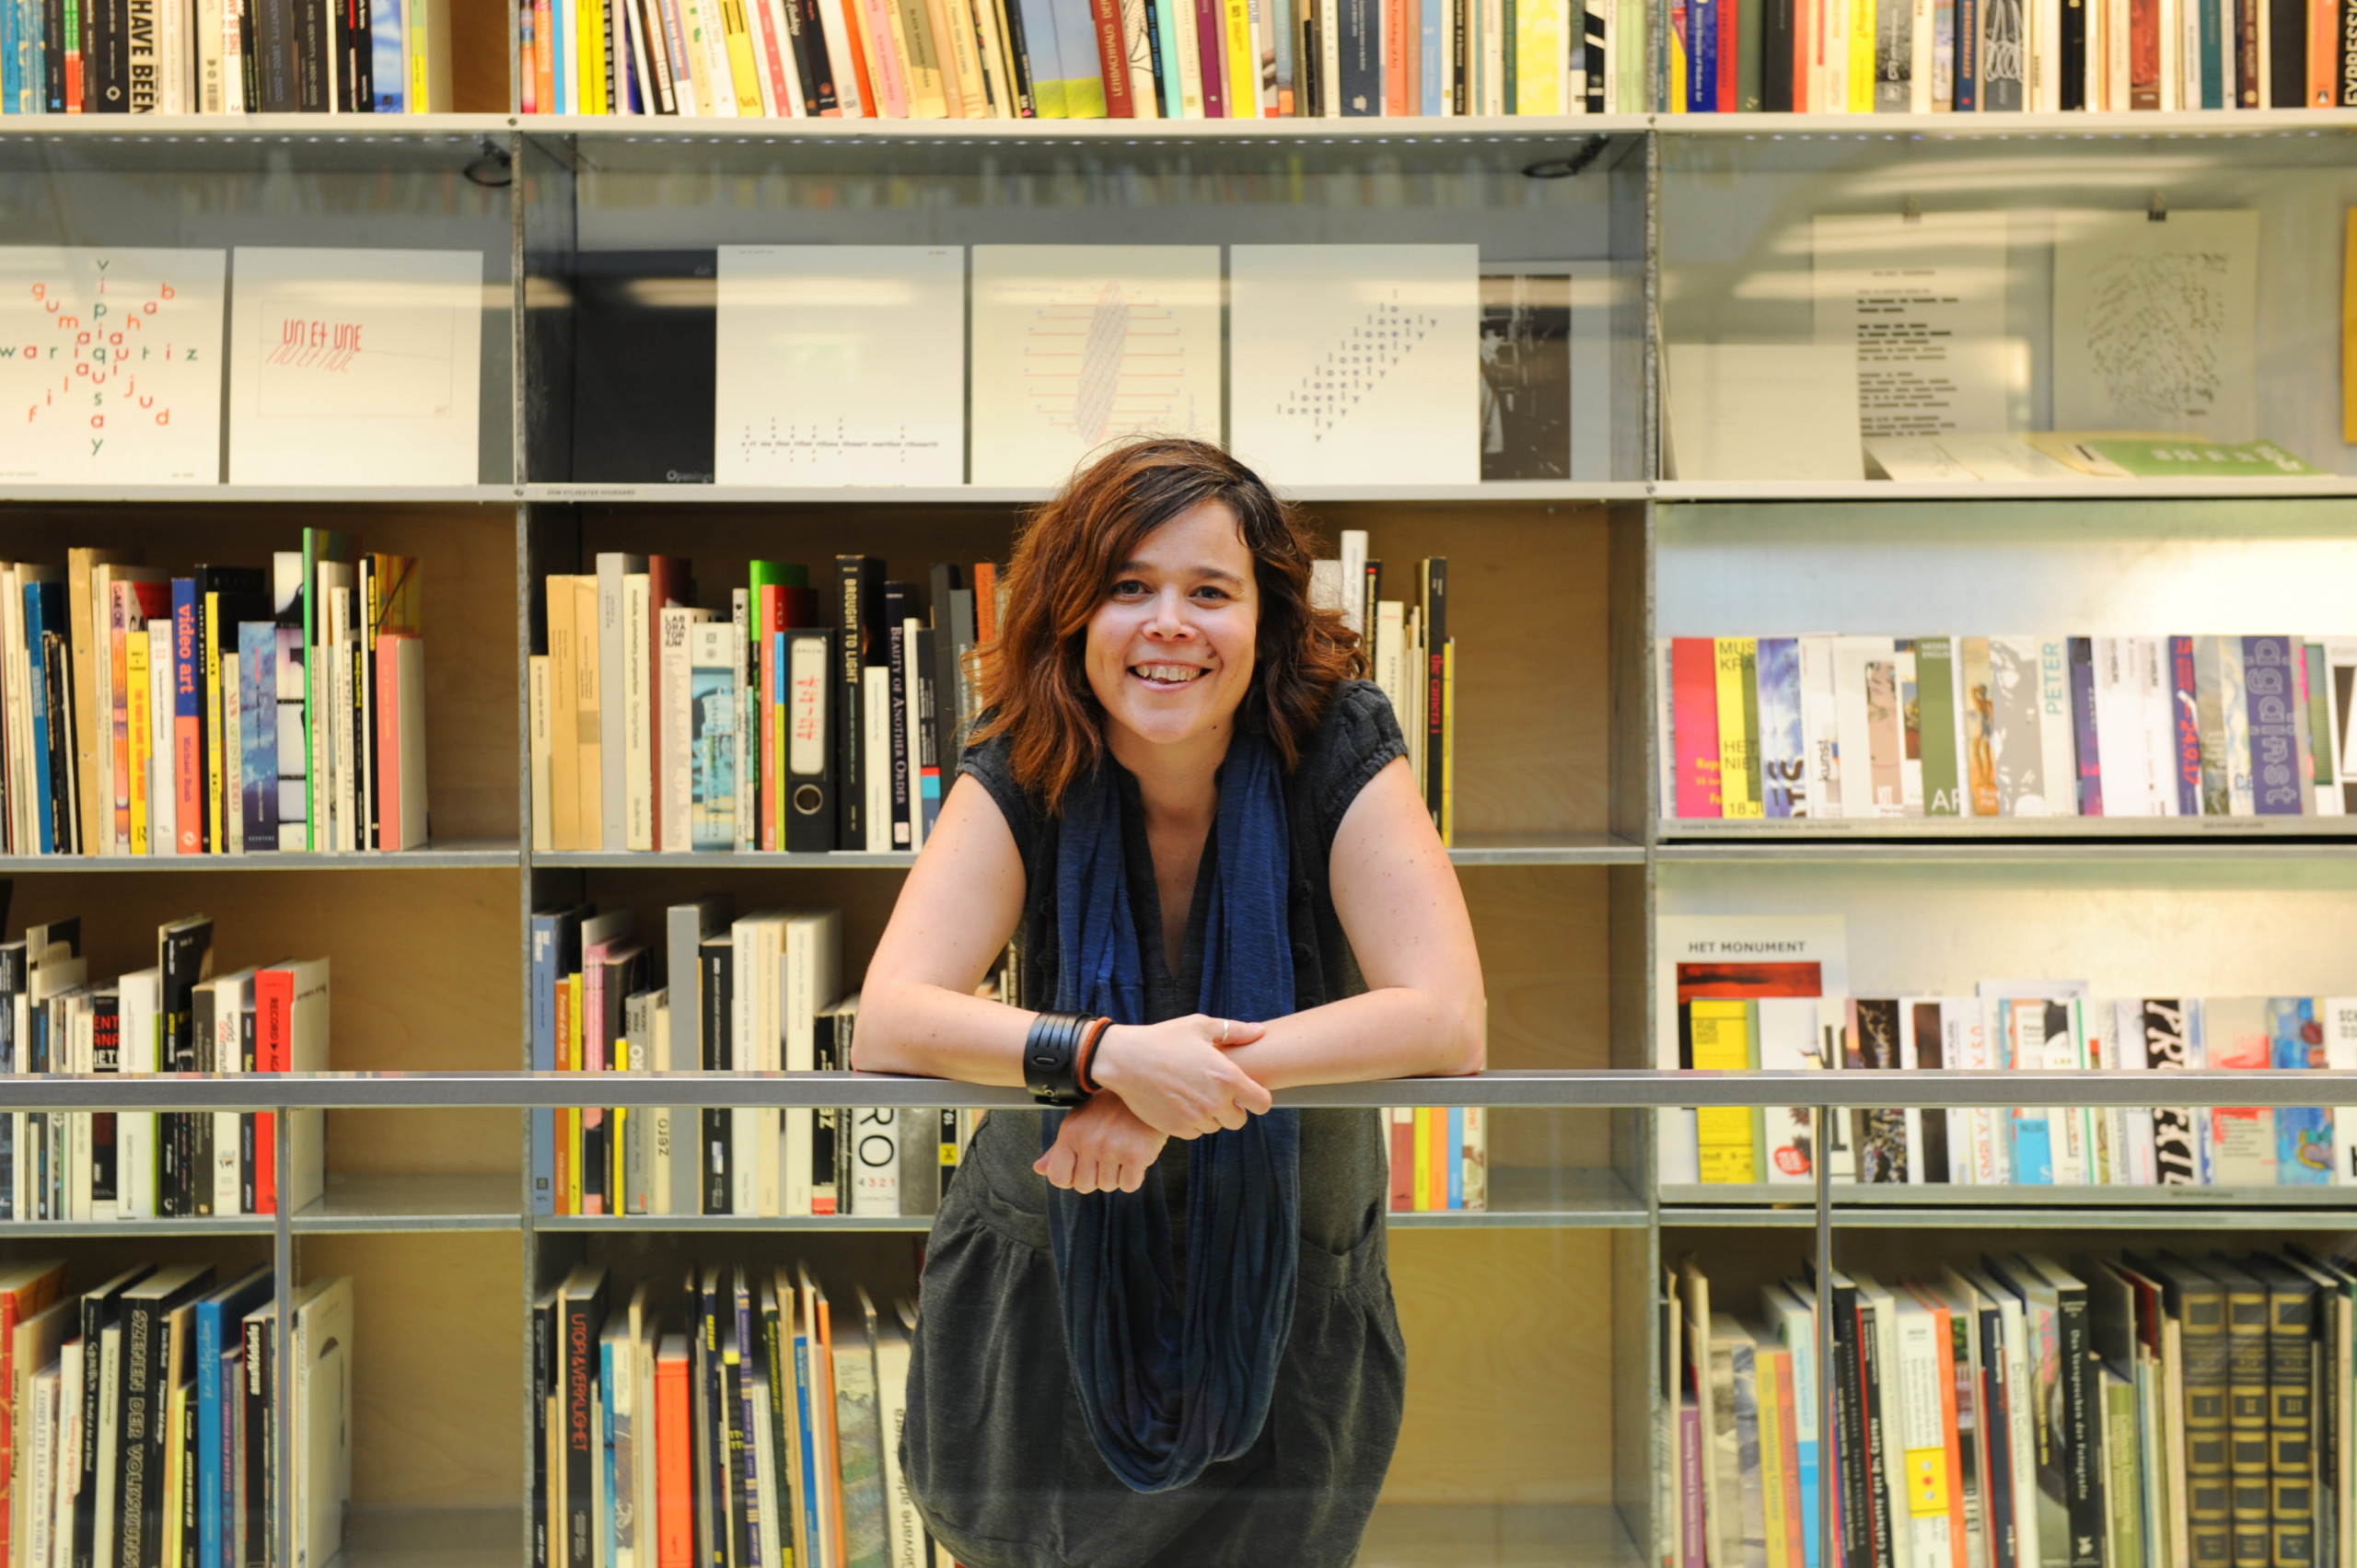 Gemma is leaning on a railing and looking into the camera smiling. She is wearing a grey dress and blue scarf and has dark hair with orange highlights. She is in front of a book shelf.